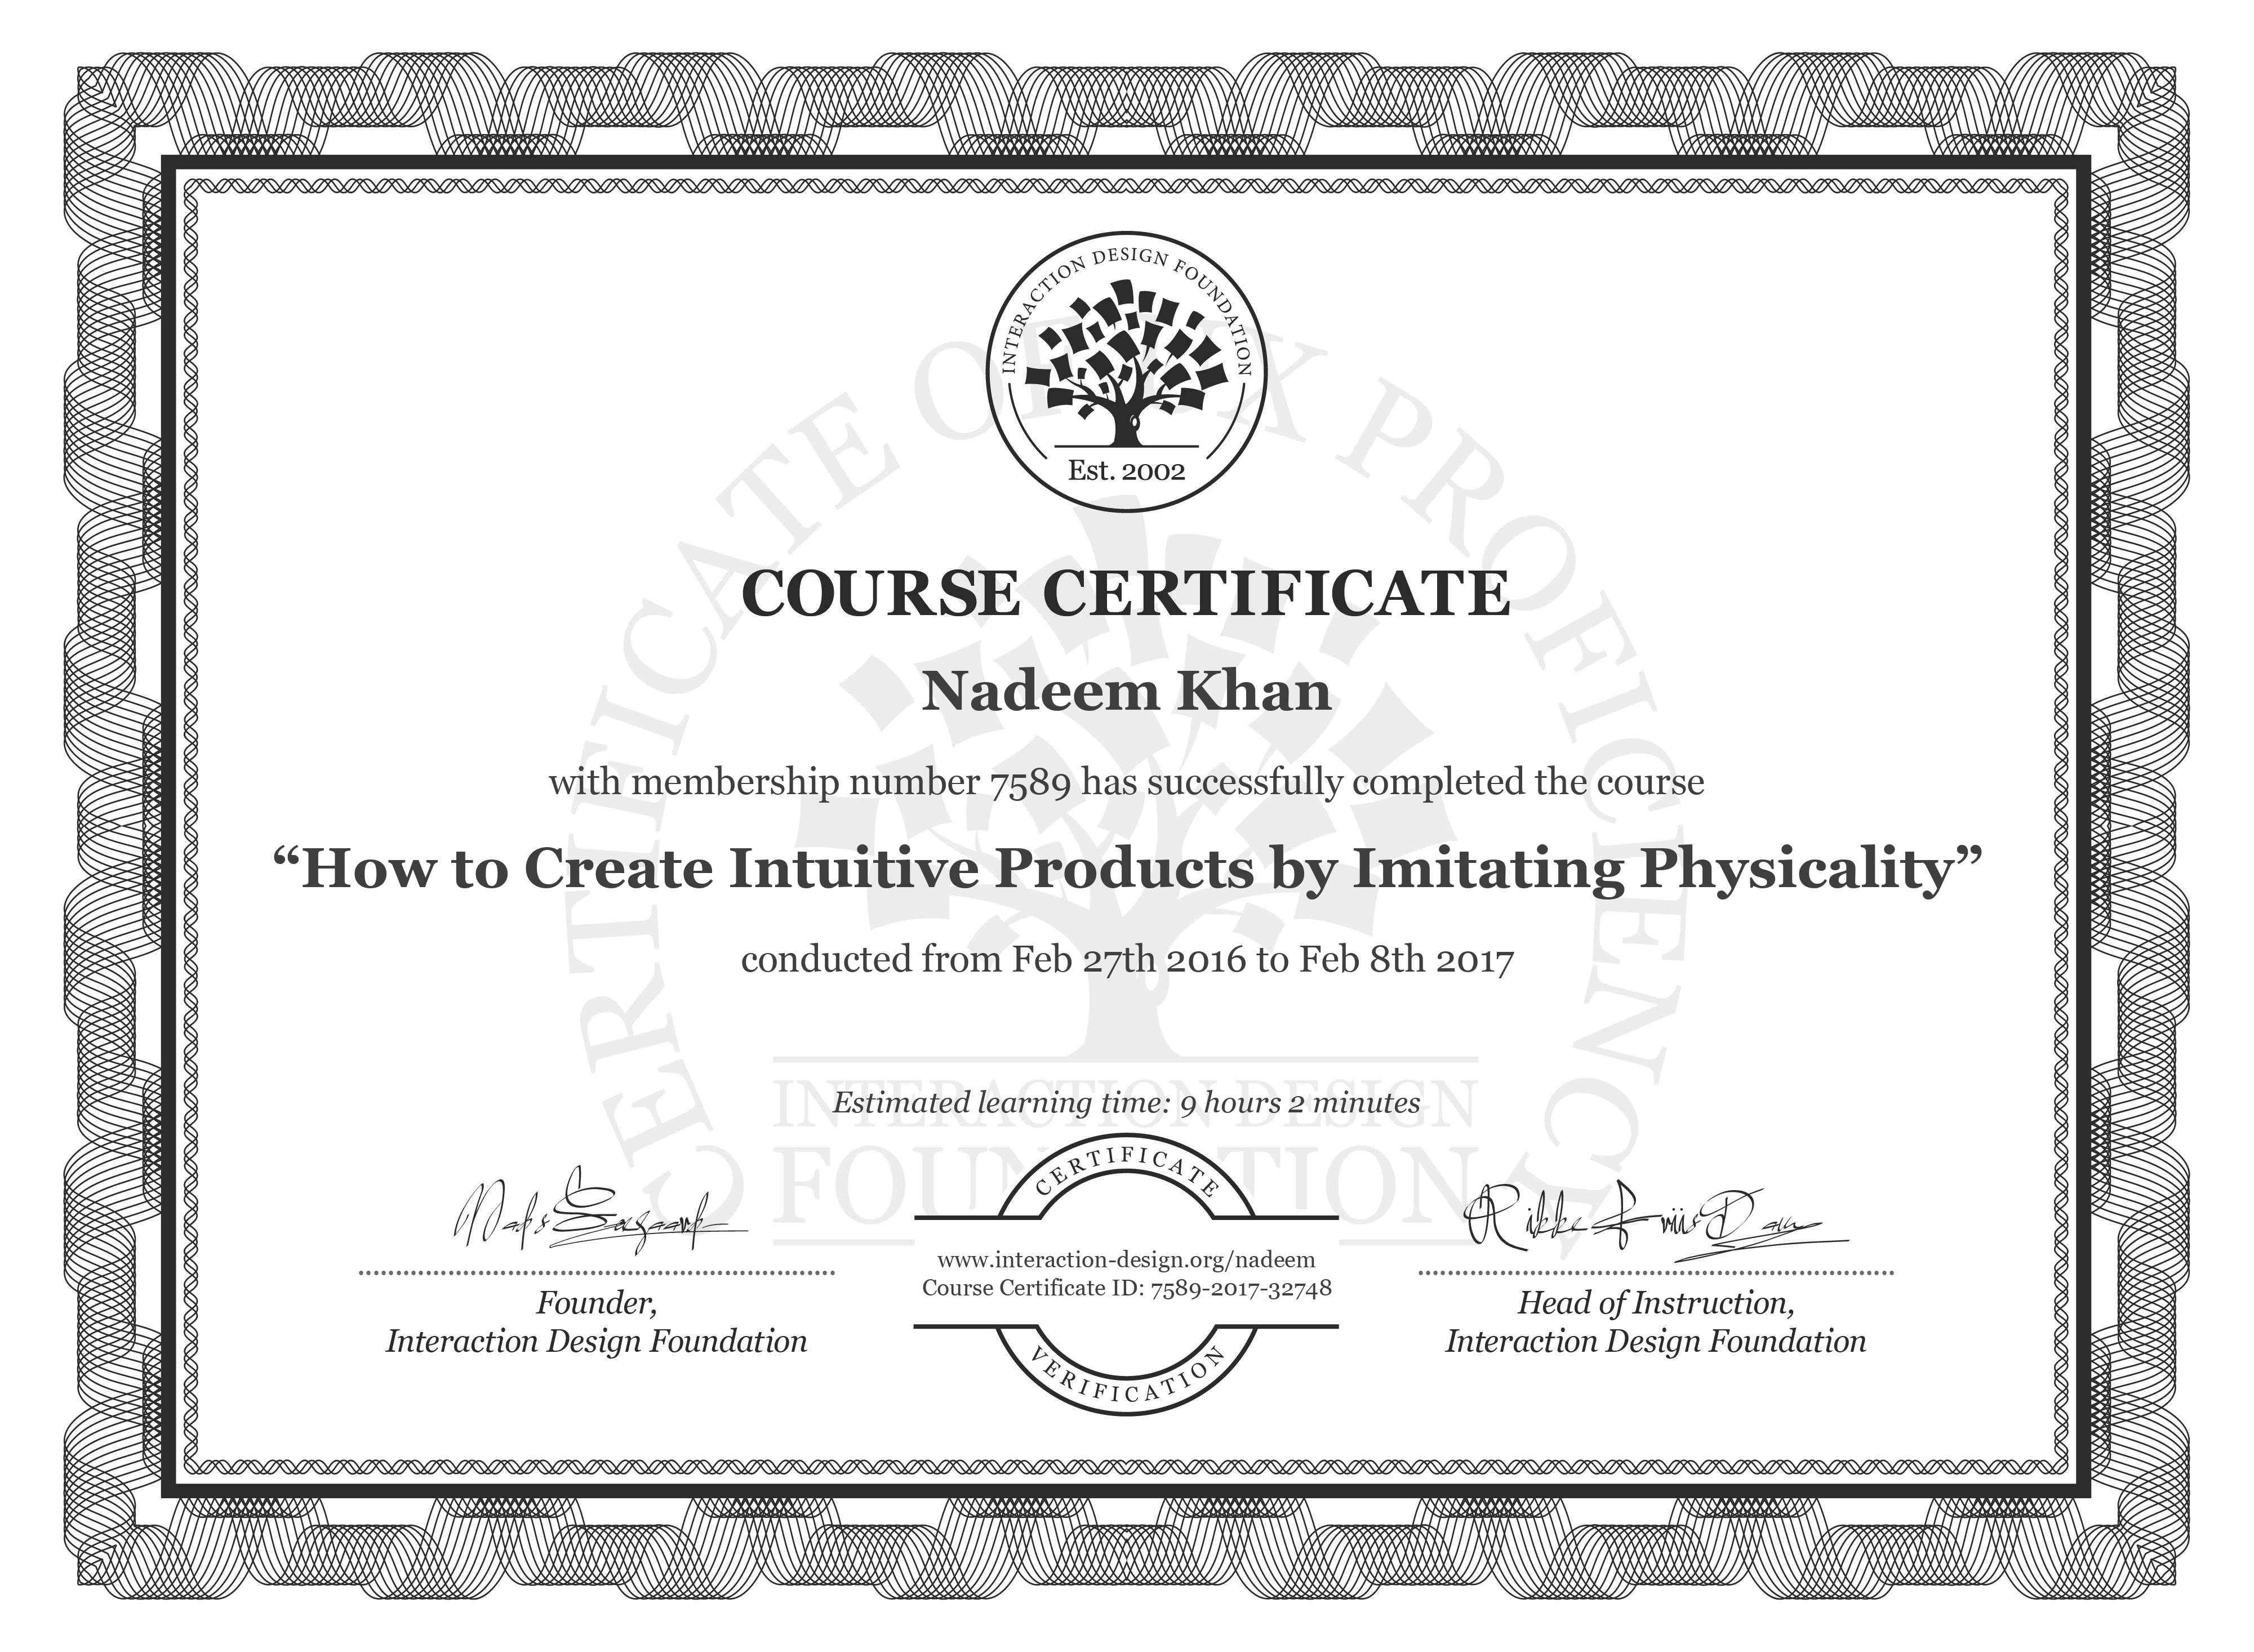 Nadeem Khan's Course Certificate: How to Create Intuitive Products by Imitating Physicality